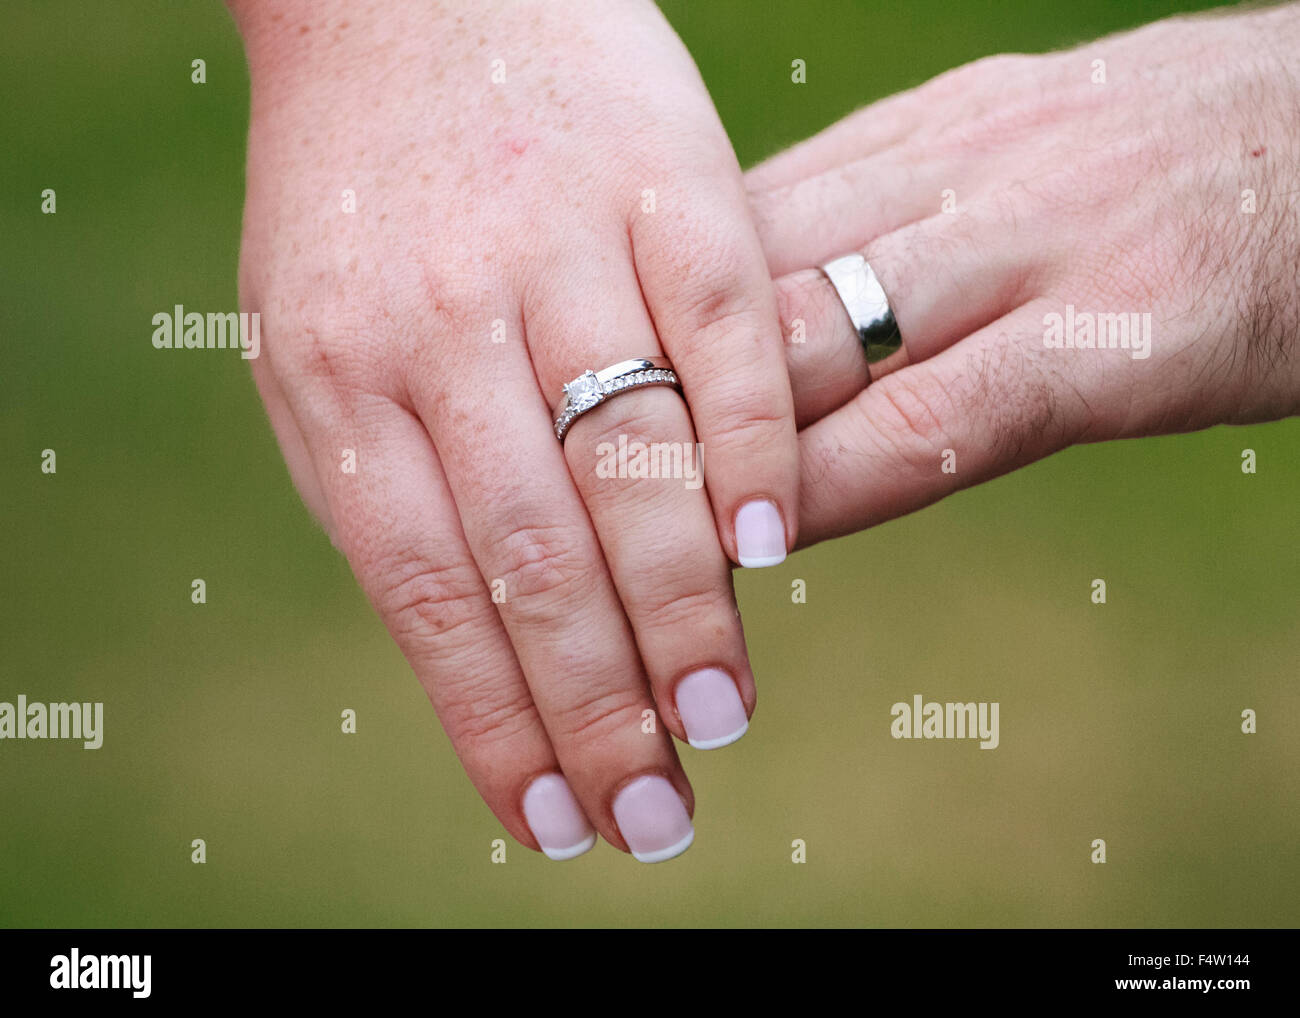 Close-up hands of newly married couple showing their wedding rings ...